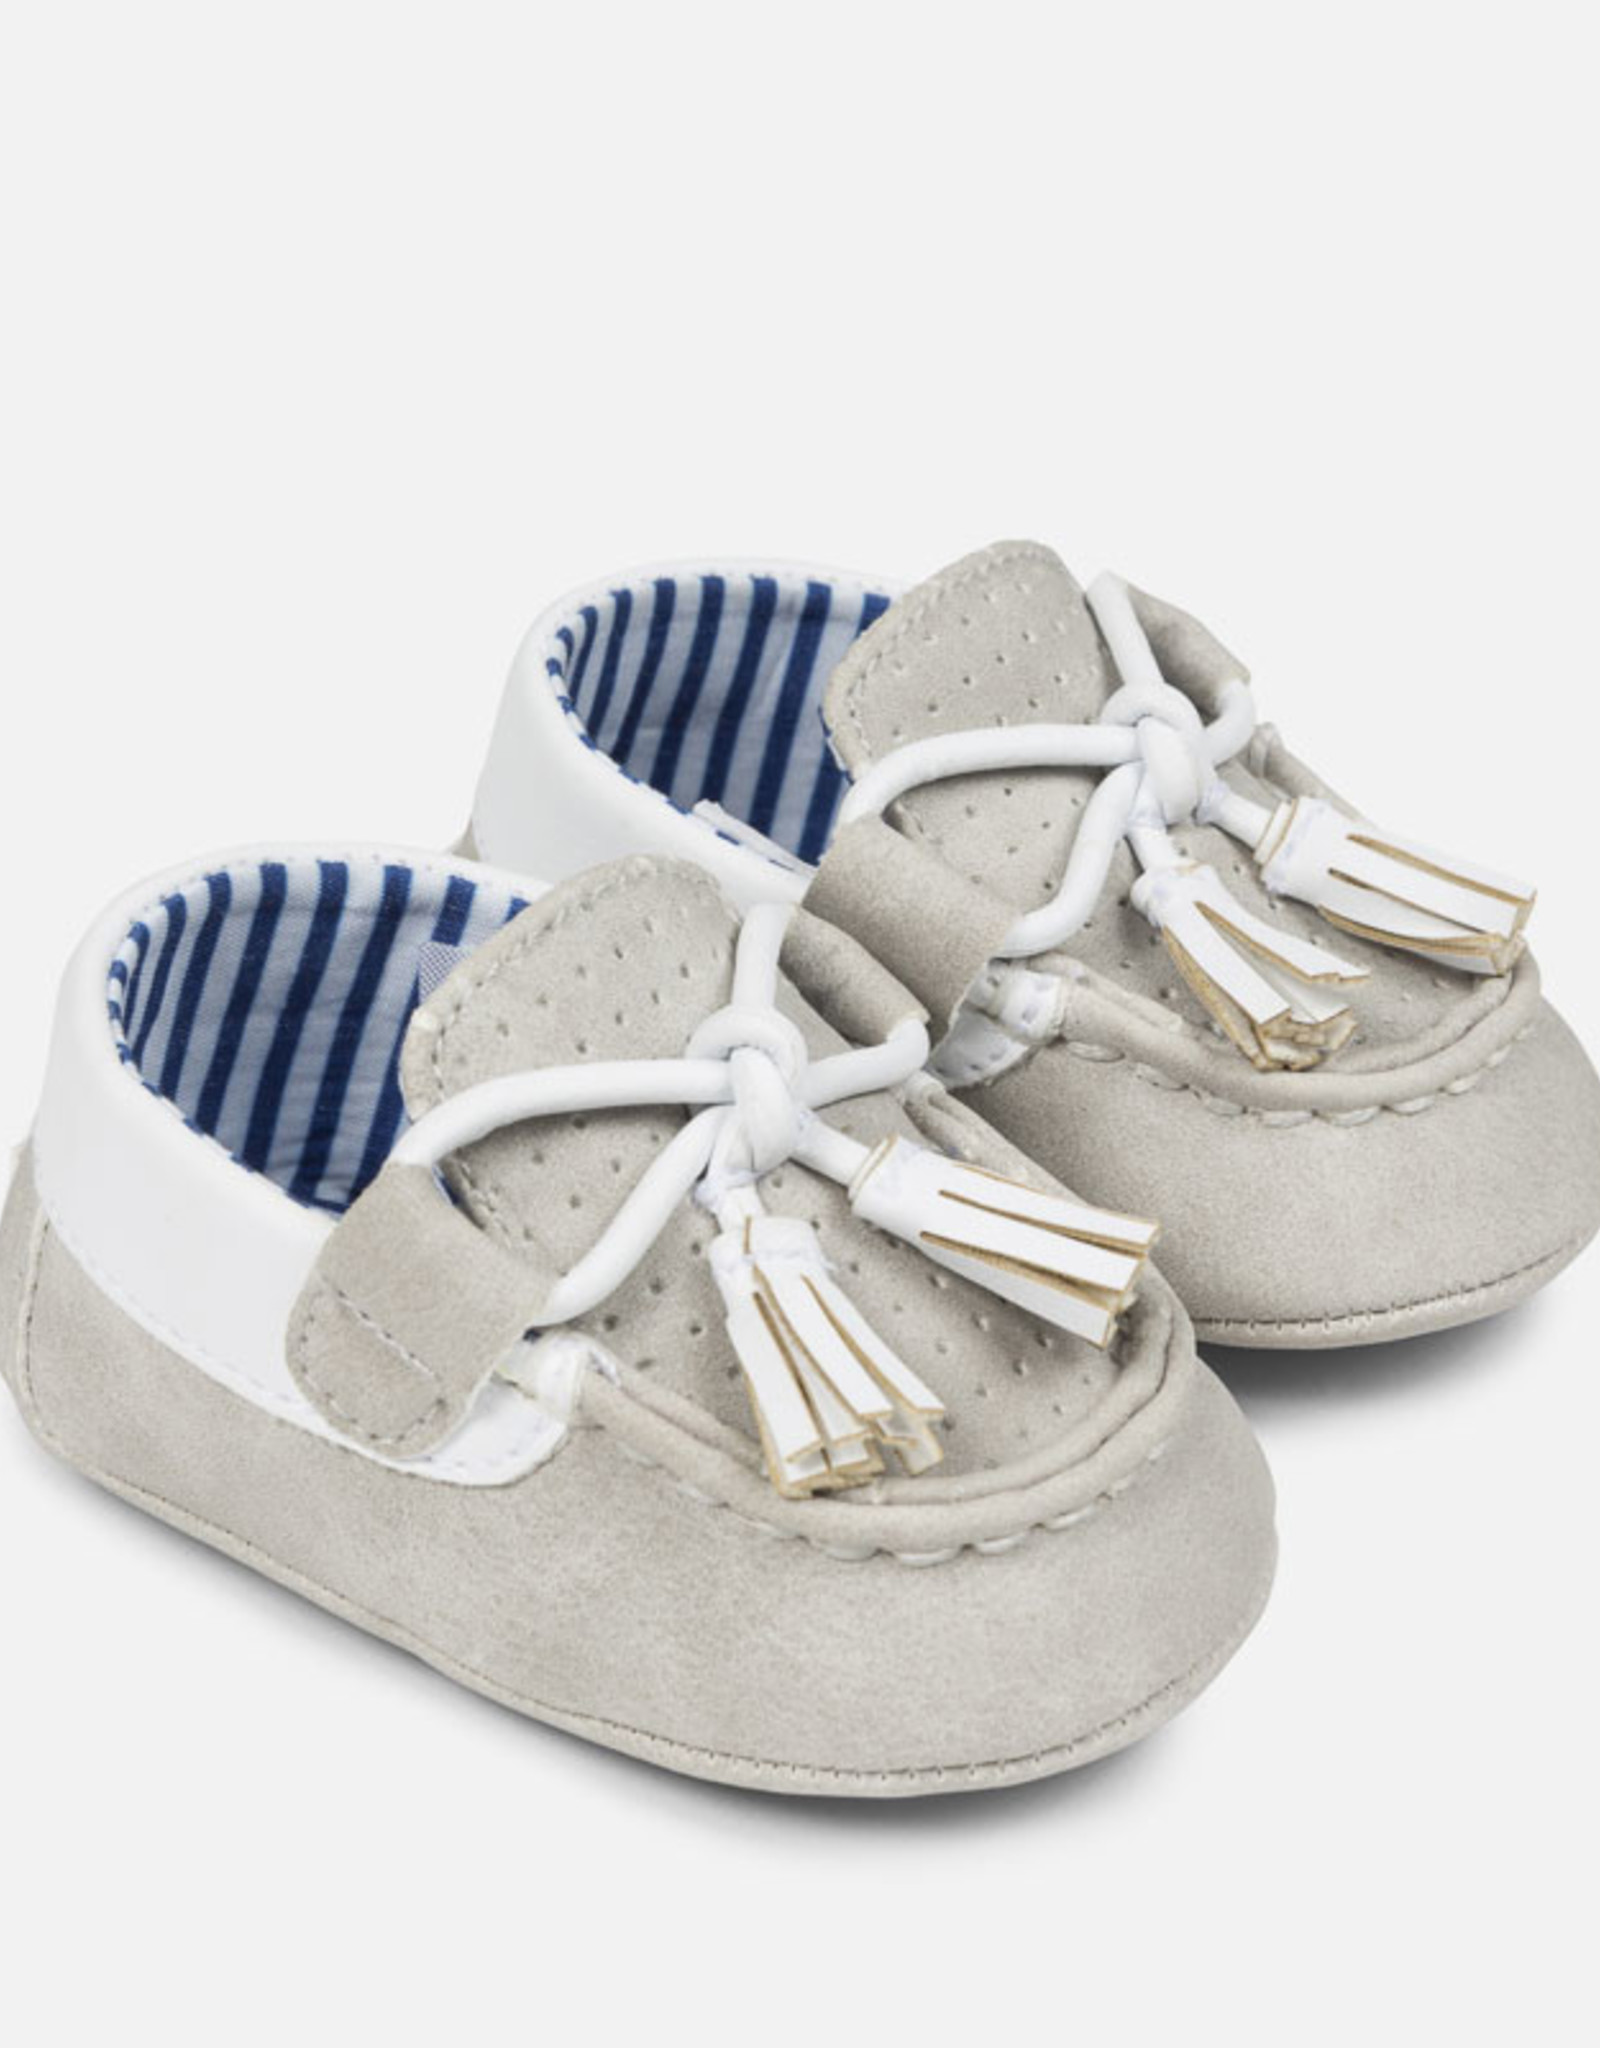 Baby's loafers